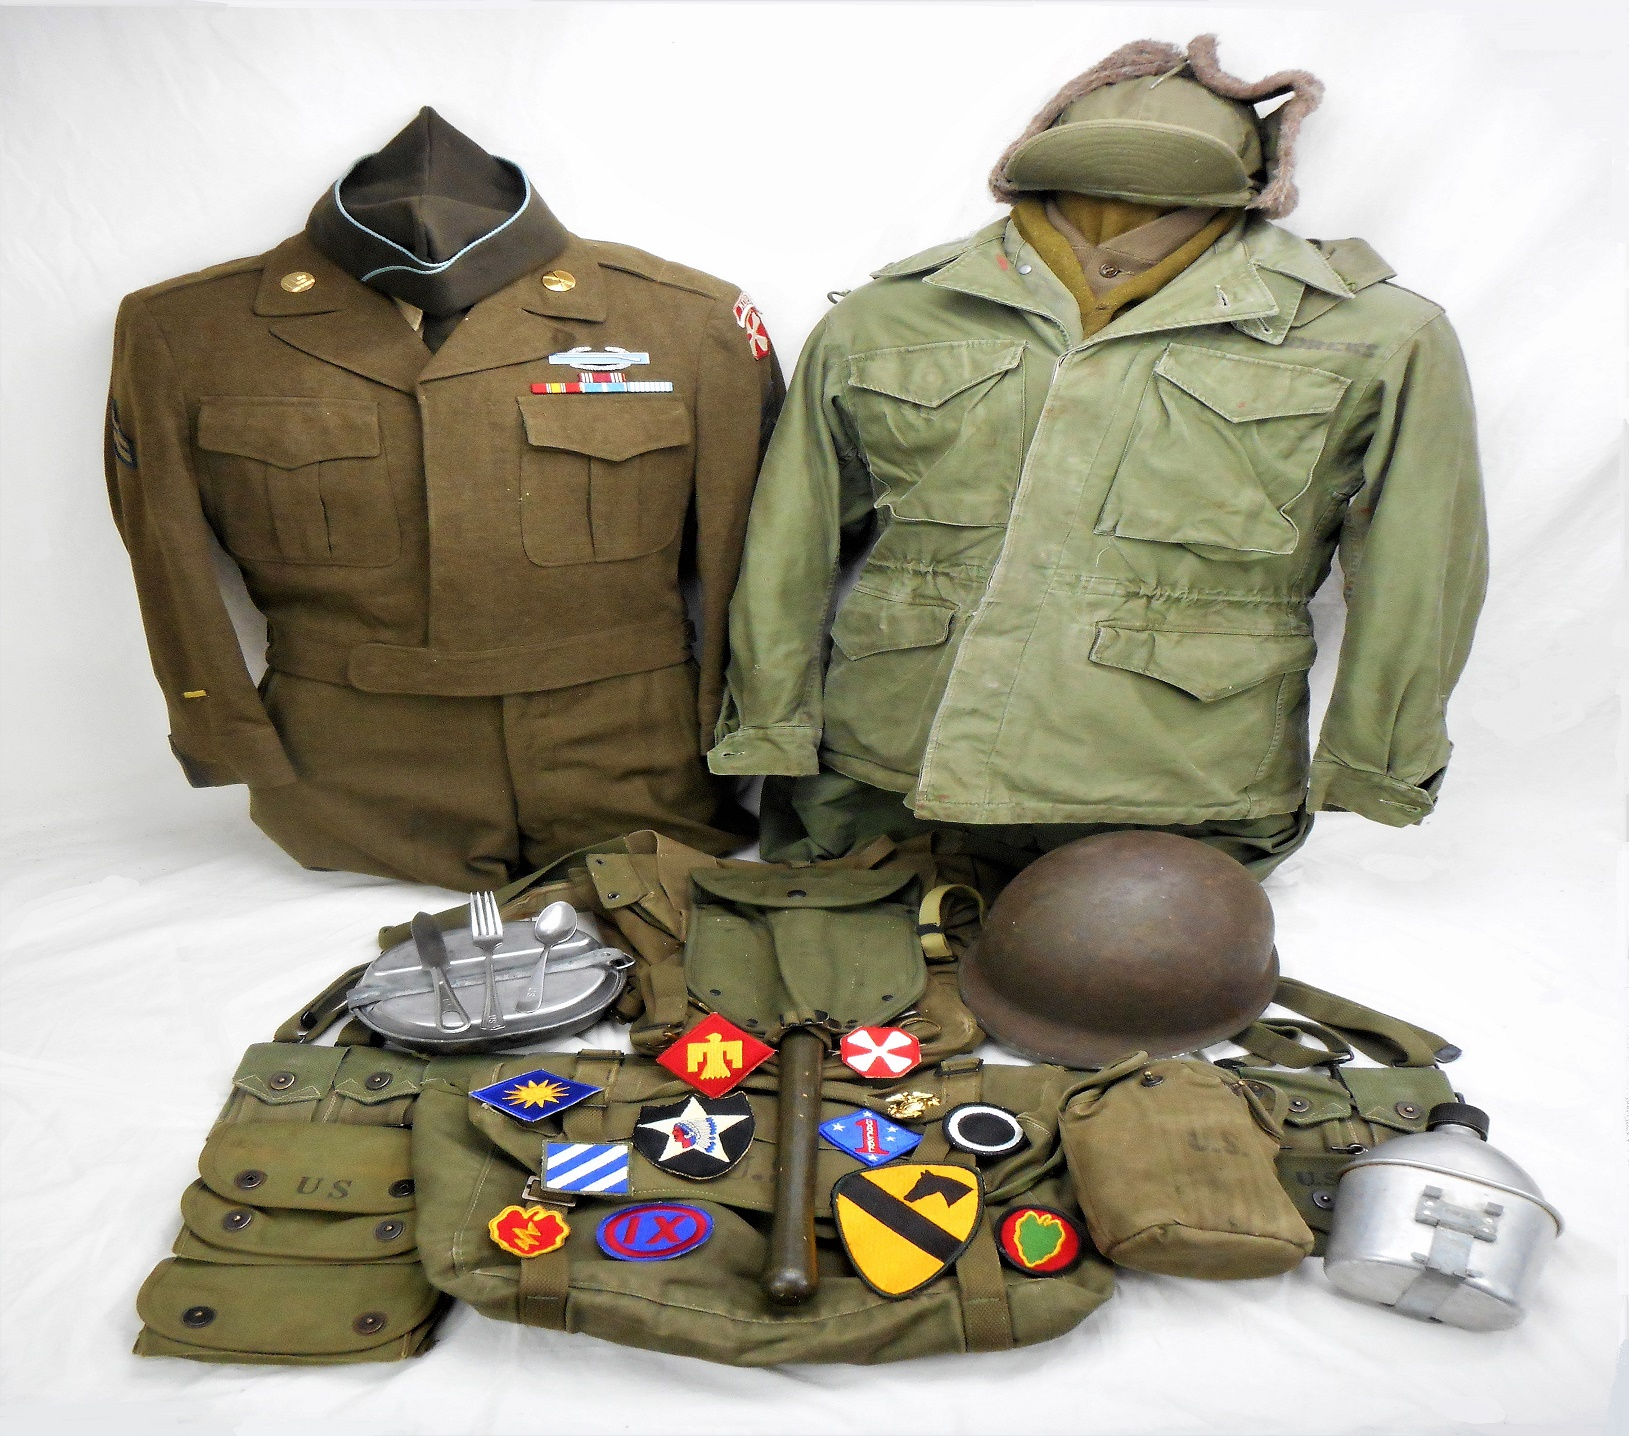 Korean War Trunk Contents